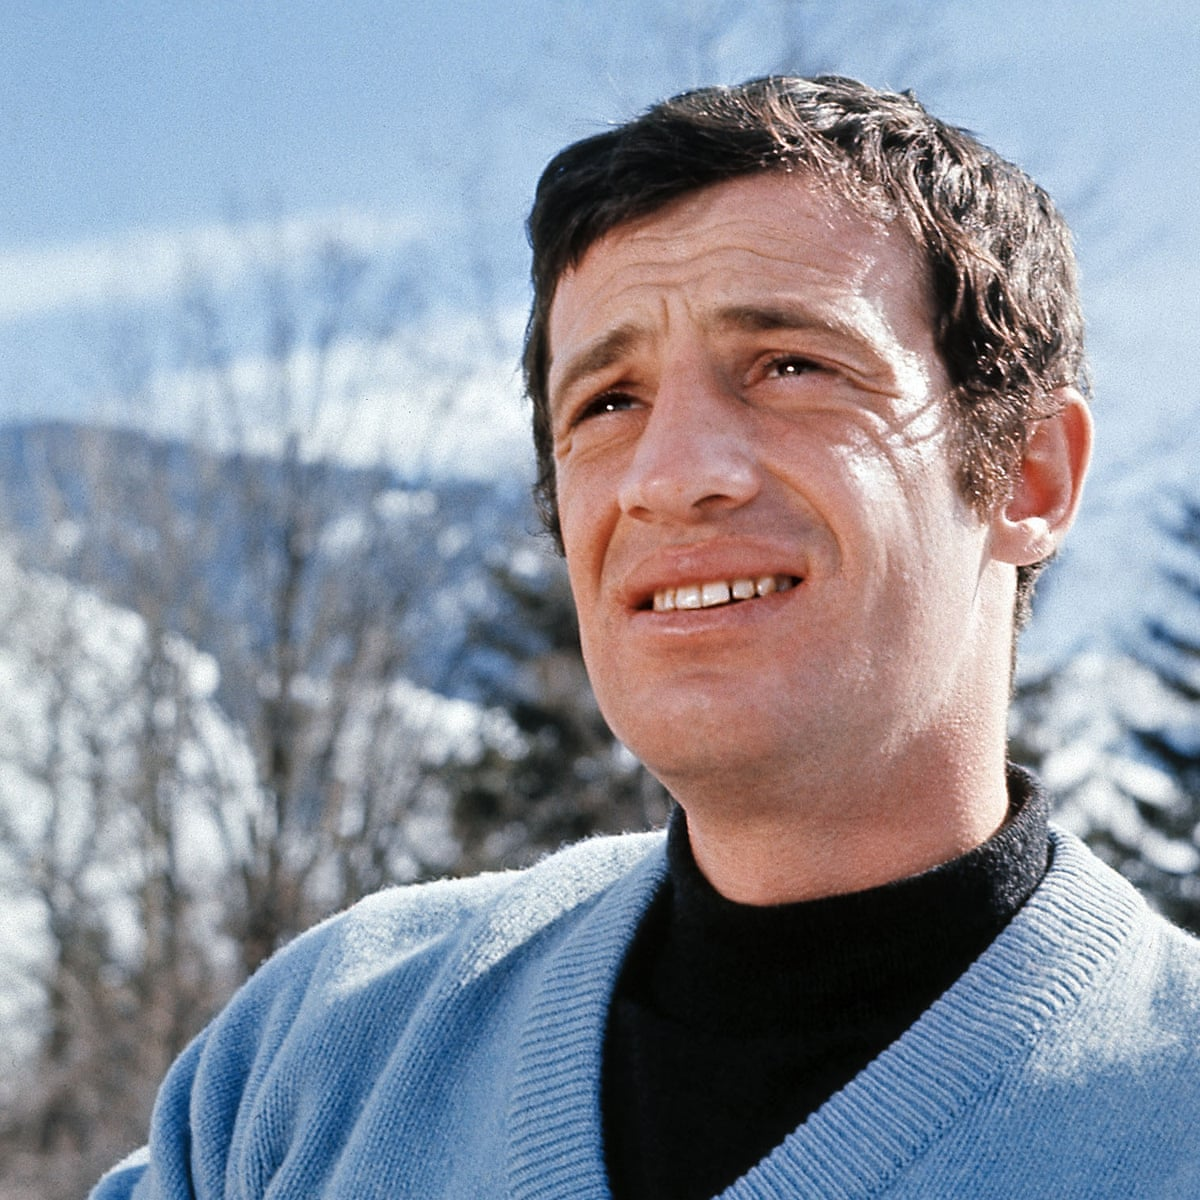 Jean Paul Belmondo French Iconic Actor known for 'Breathless' Passed Away at 88..